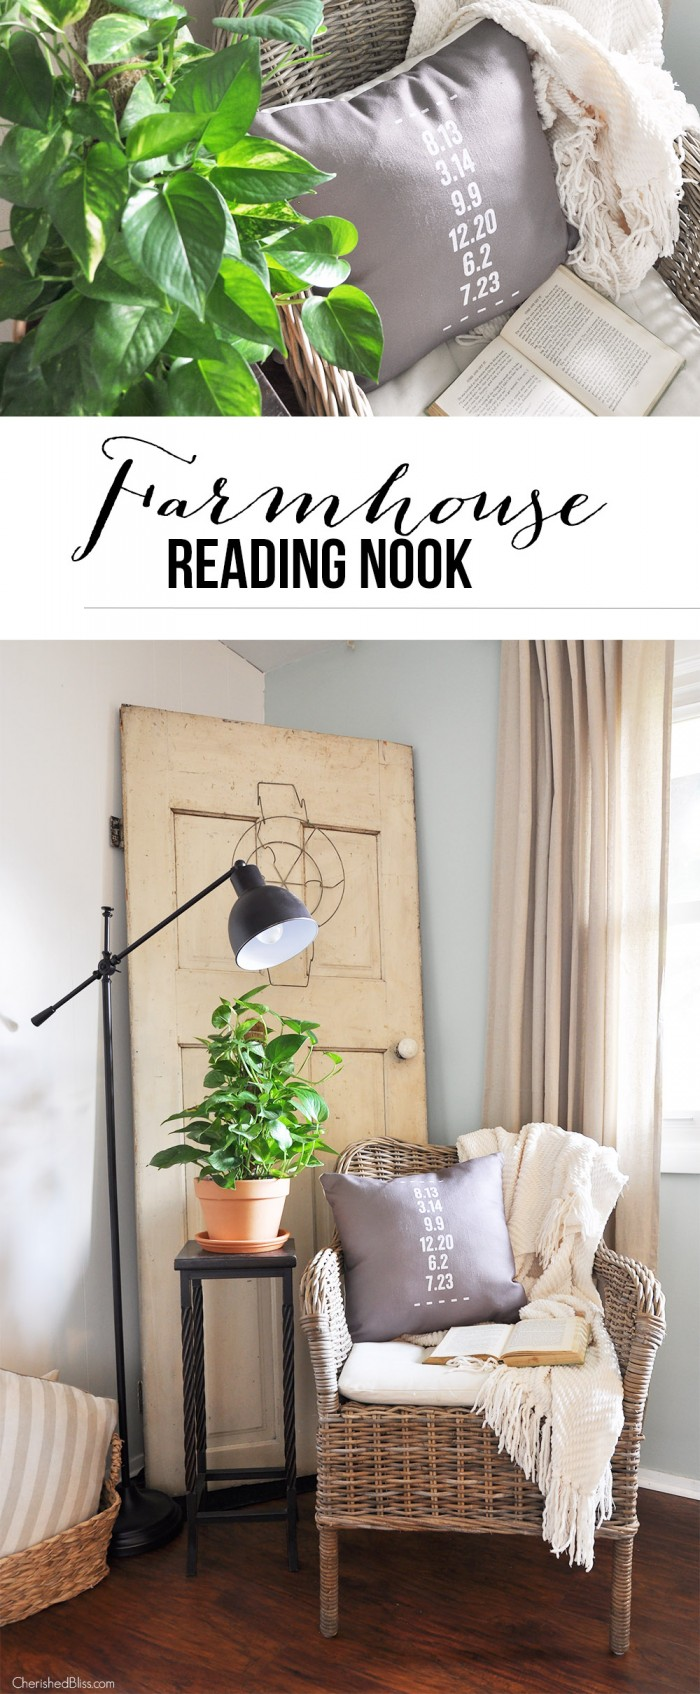 Farmhouse-Reading-Nook-700x1694